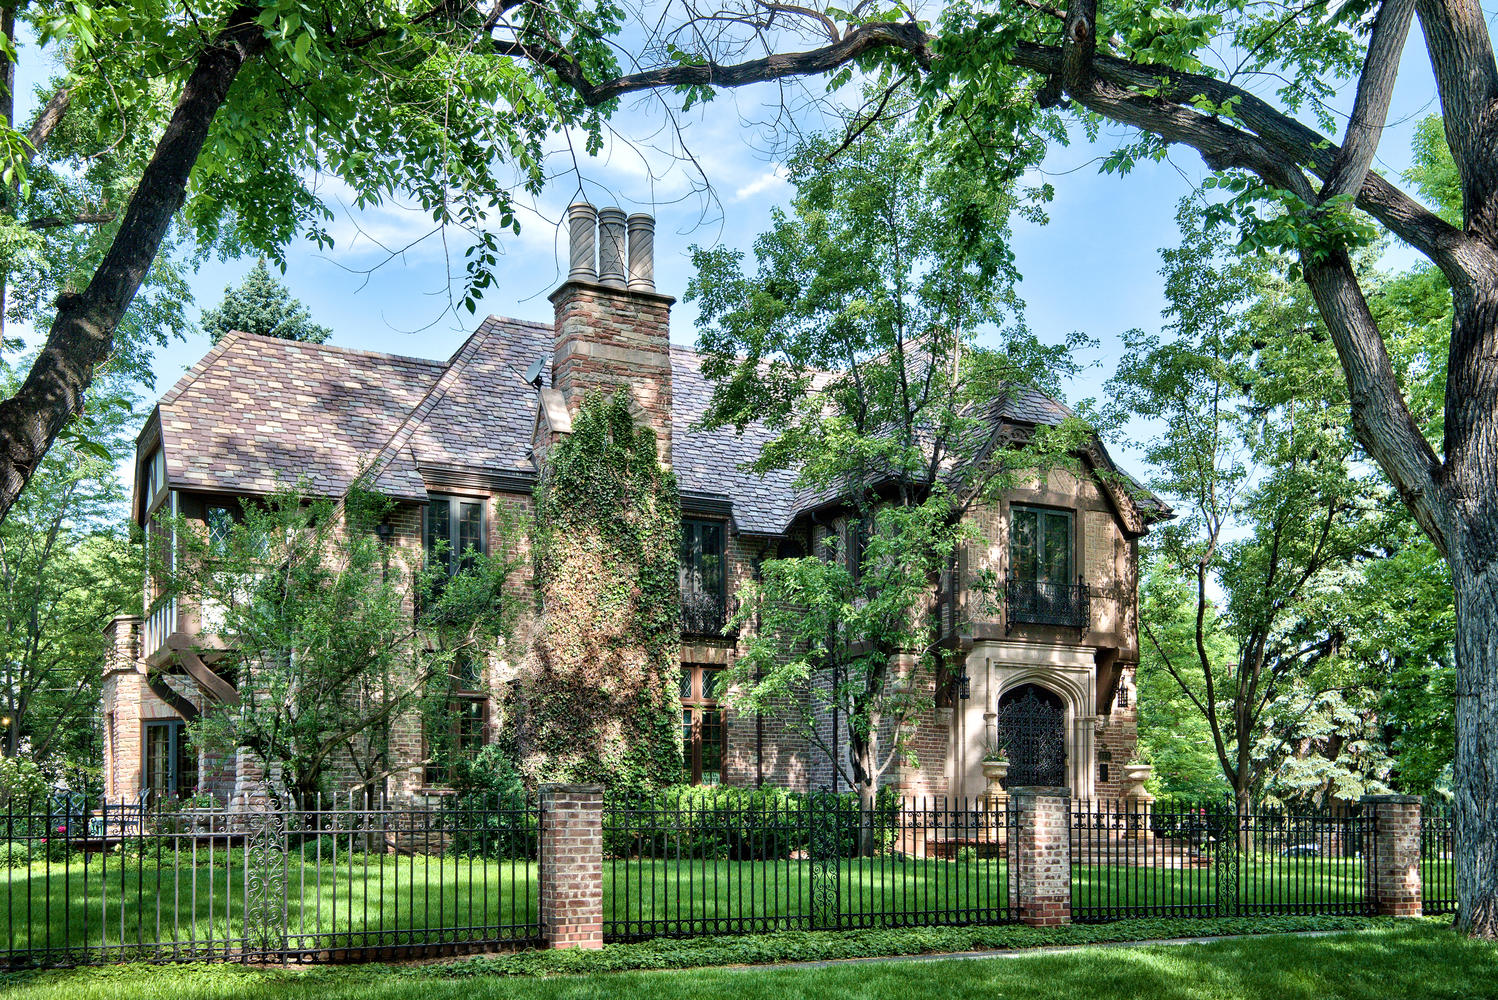 獨棟家庭住宅 為 出售 在 Spectacular Tudor on a Beautiful Half Acre in Historic Denver Country Club 177 Humboldt Street Denver, 科羅拉多州 80218 美國